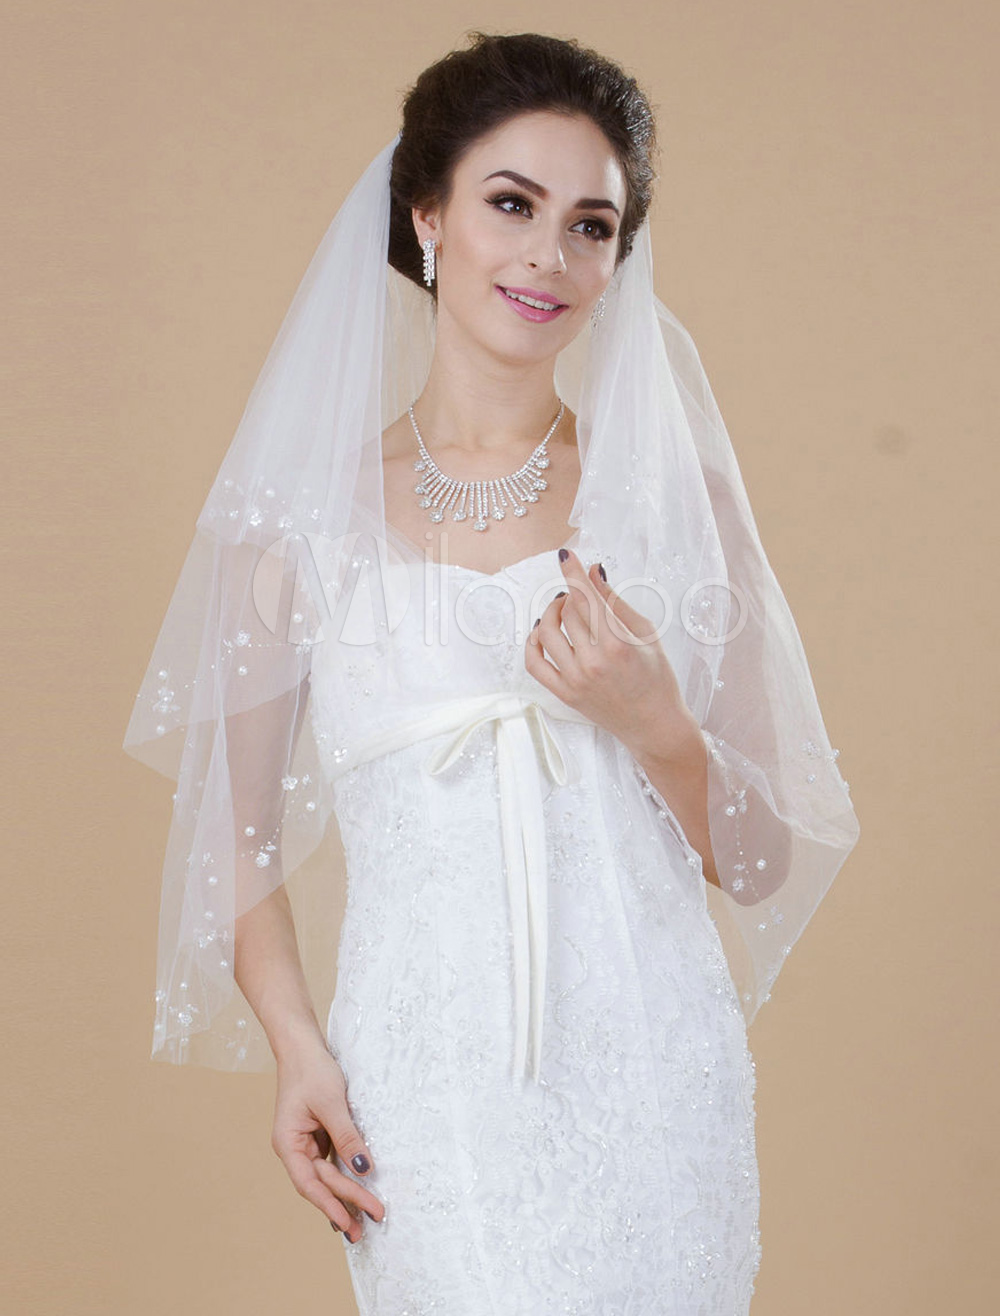 Two-Tier Drop Tulle Pearls Wedding Elbow Veil For Bride